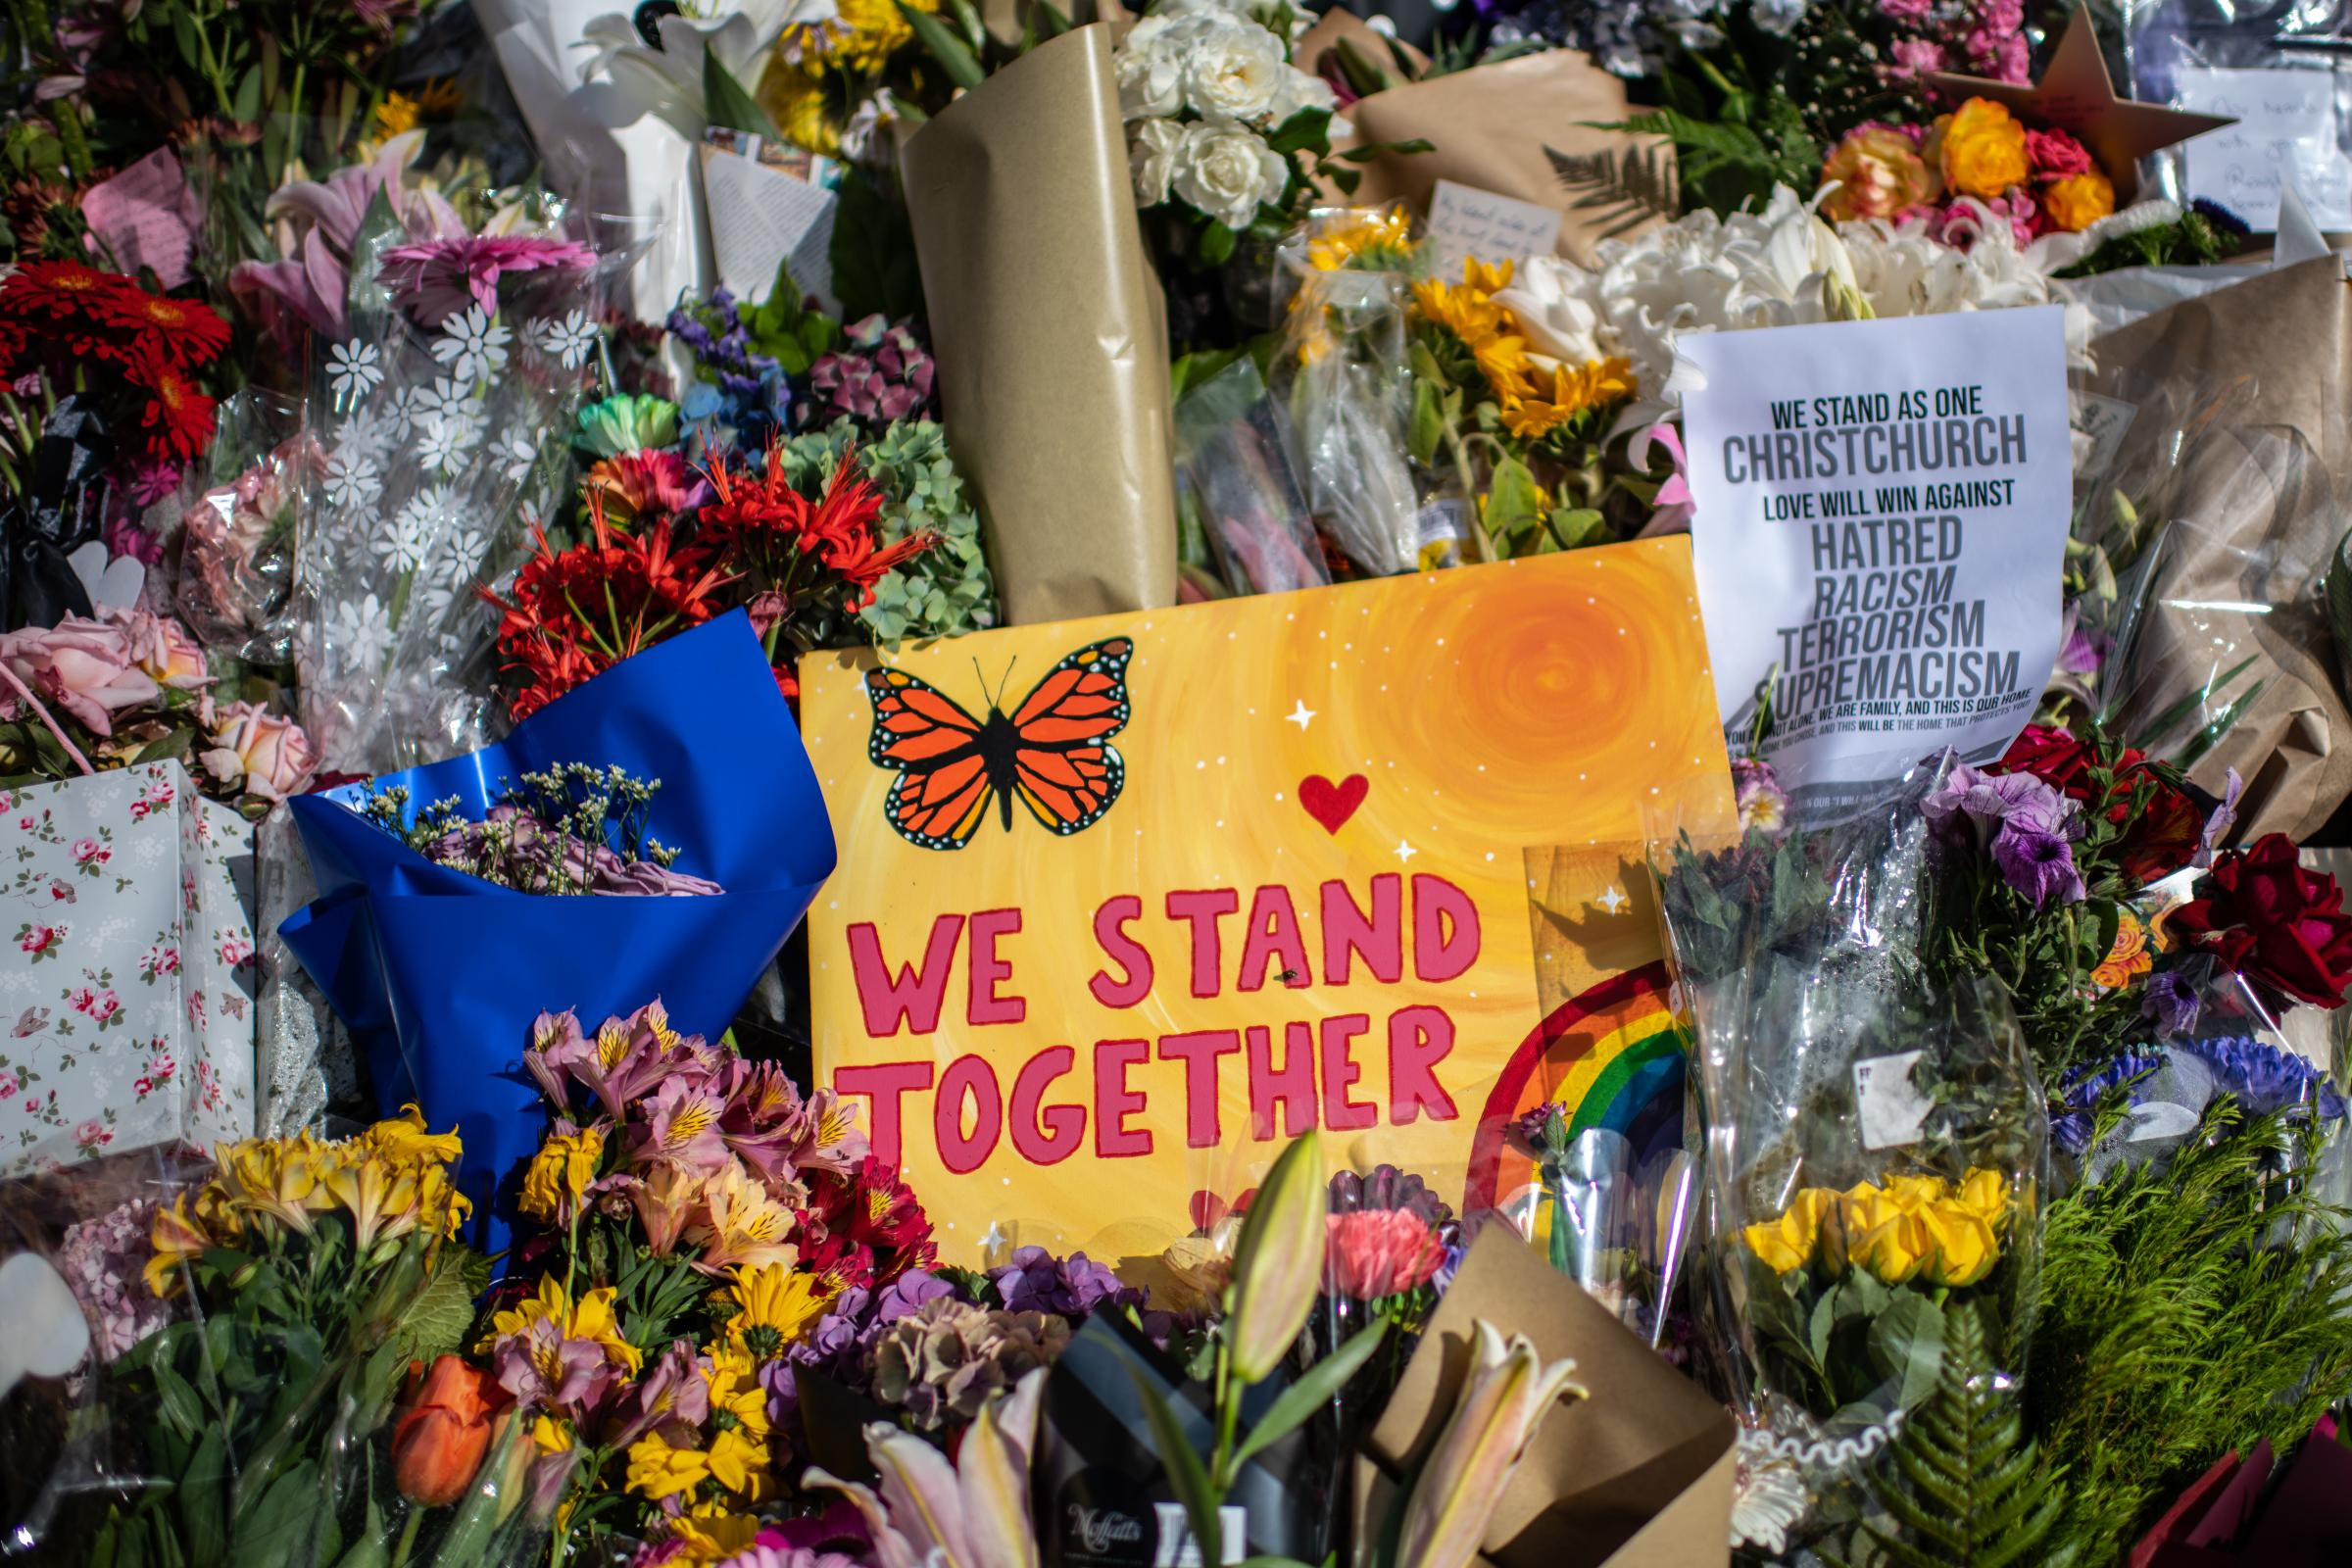 Social media platforms have been called out in the wake of the Christchurch attacks